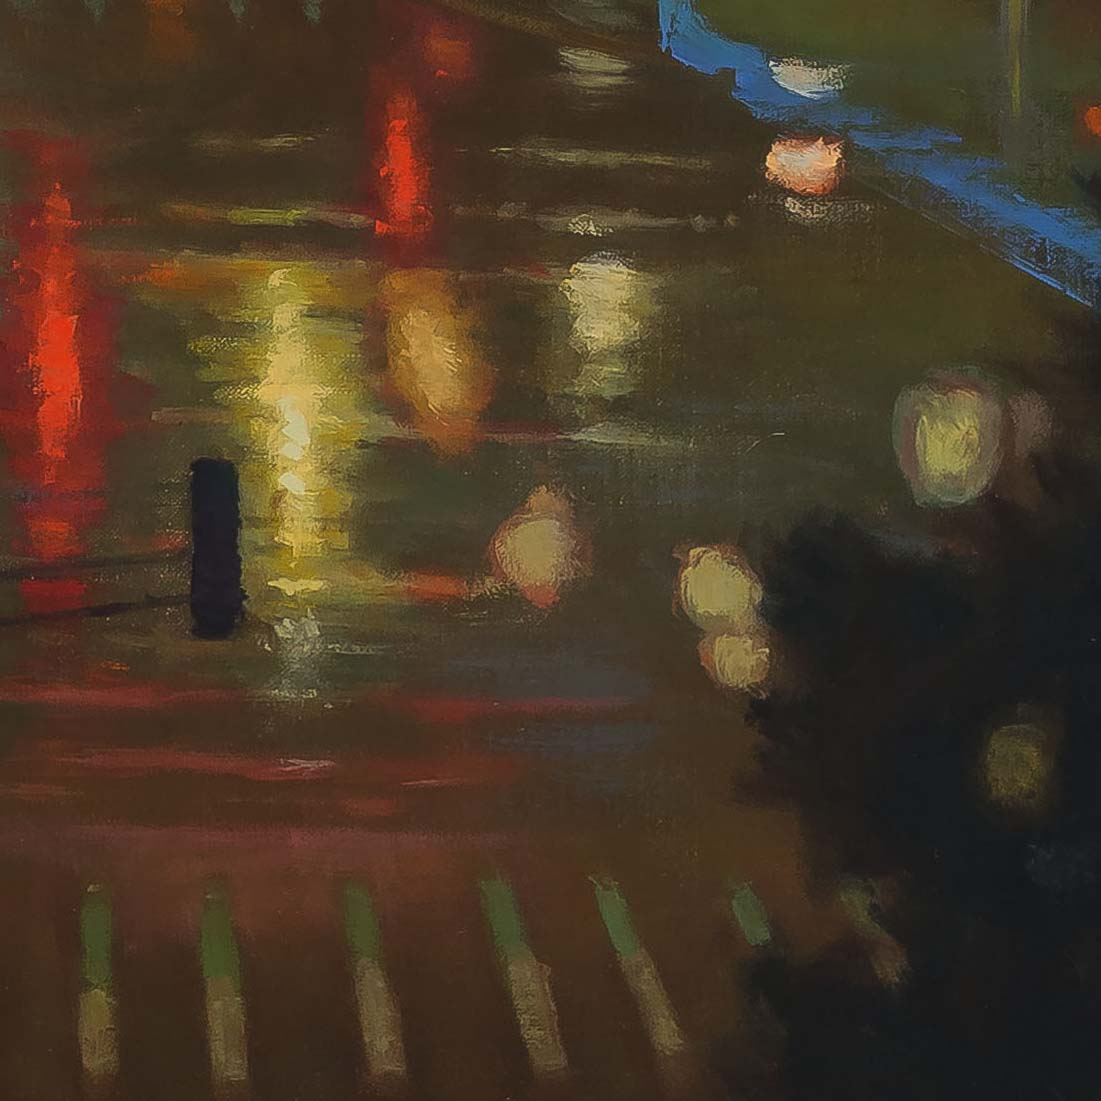 Raindrop Abstract-painting by-Carl Bretzke-detail2-210331